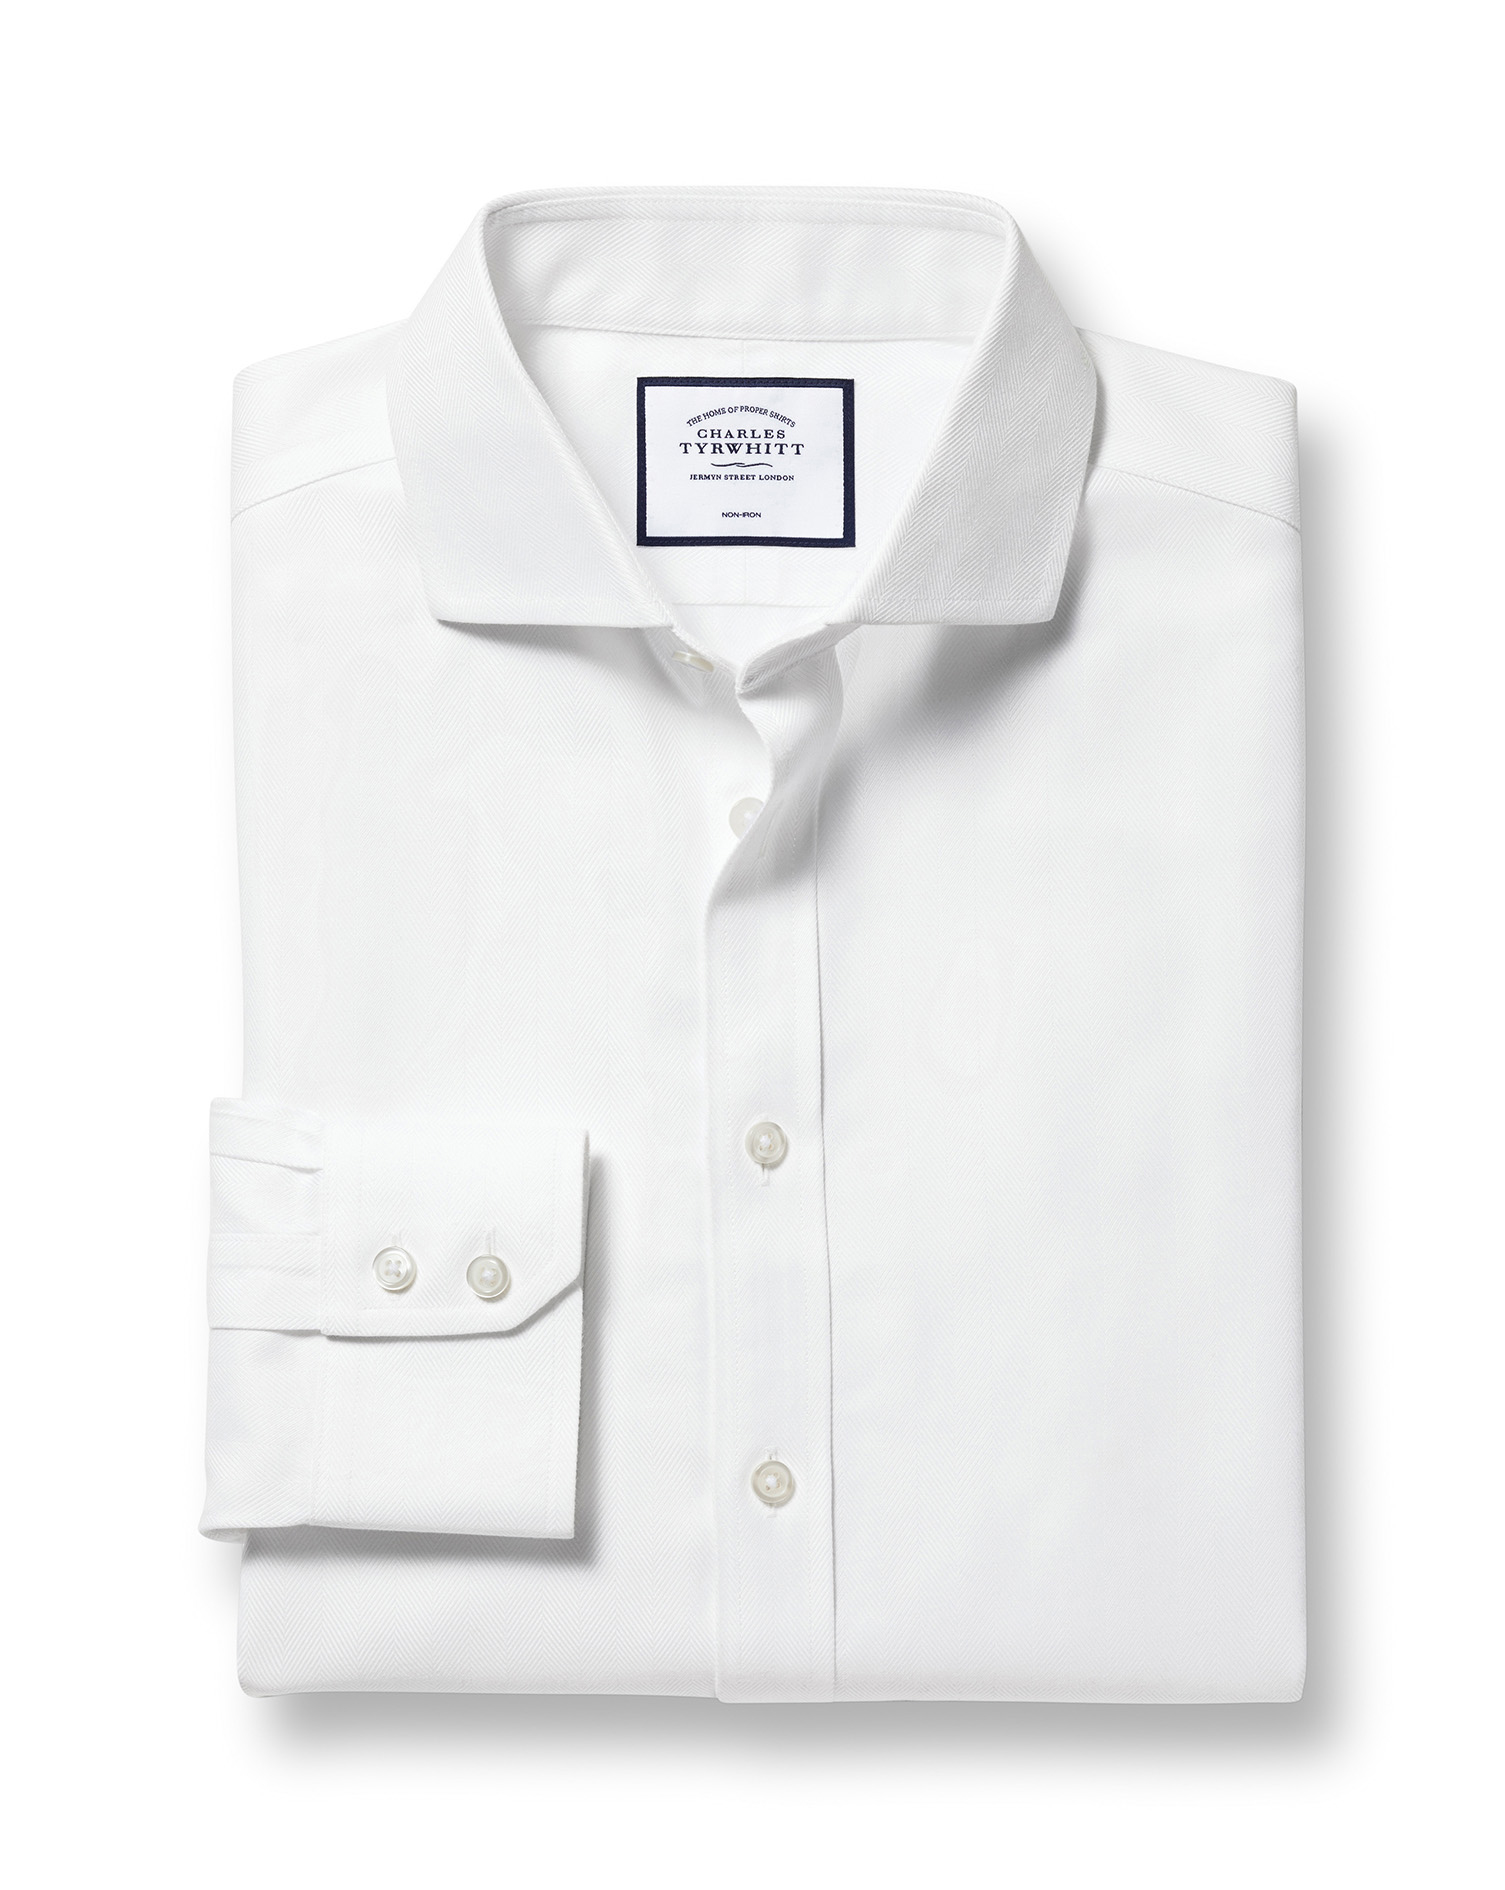 Slim Fit Non-Iron White Herringbone Cotton Formal Shirt Single Cuff Size 17.5/36 by Charles Tyrwhitt